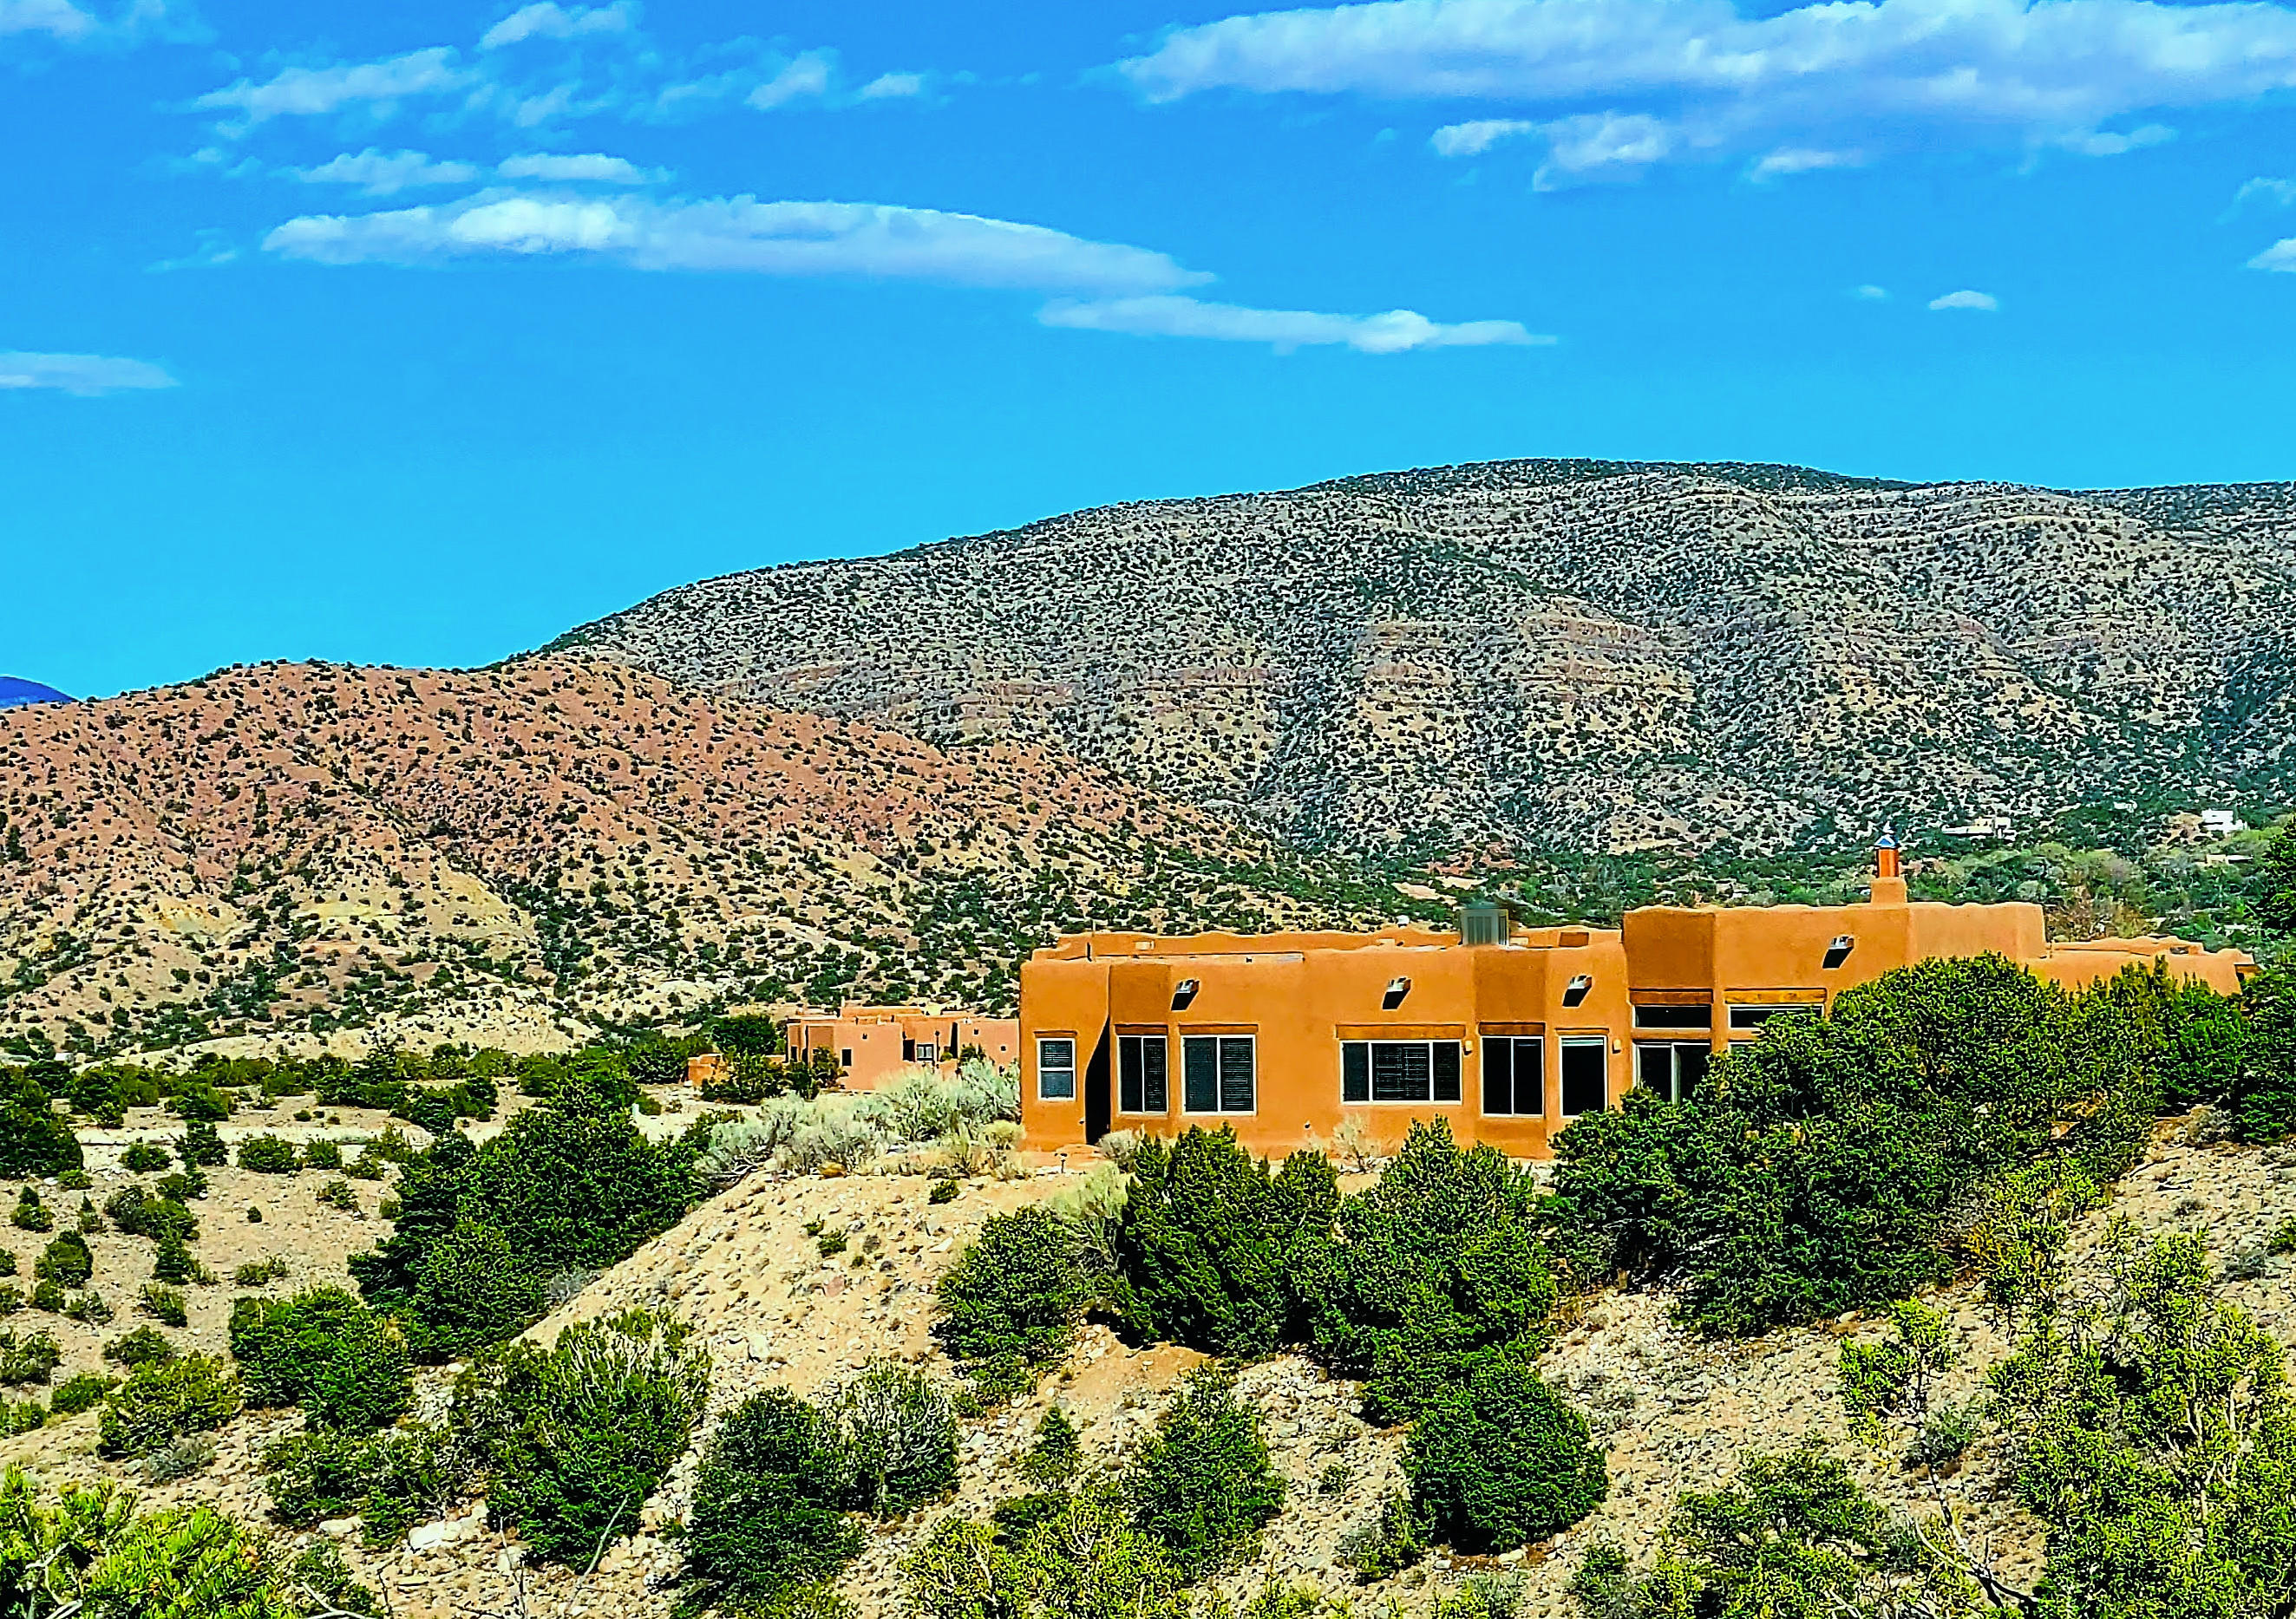 Perched hillside with million dollar views in upscale Placitas community of ''The Overlook'', This top notch custom home is a tasteful celebration of life in the Desert Southwest & bursts w/charm & character. Walls of windows & doors take in the color filled skies, mesas & mountains. The thoughtful design offers a large great room & open dining room w/pass through bar to the kitchen, at the center of the home. 2 spacious guest rooms + shared bath are on one wing of the house, and the master suite and adjacent office/4th bed & ample storage on the opposite side. Oversized Garage w/workshop, Tankless H20 Heater & H20 Softener. Bonus storage room w/built-ins & plumbed for Dark Room Equip! Multiple flagstone patios on  all sides of home. New Mexico True finishes. Special Features List Attached